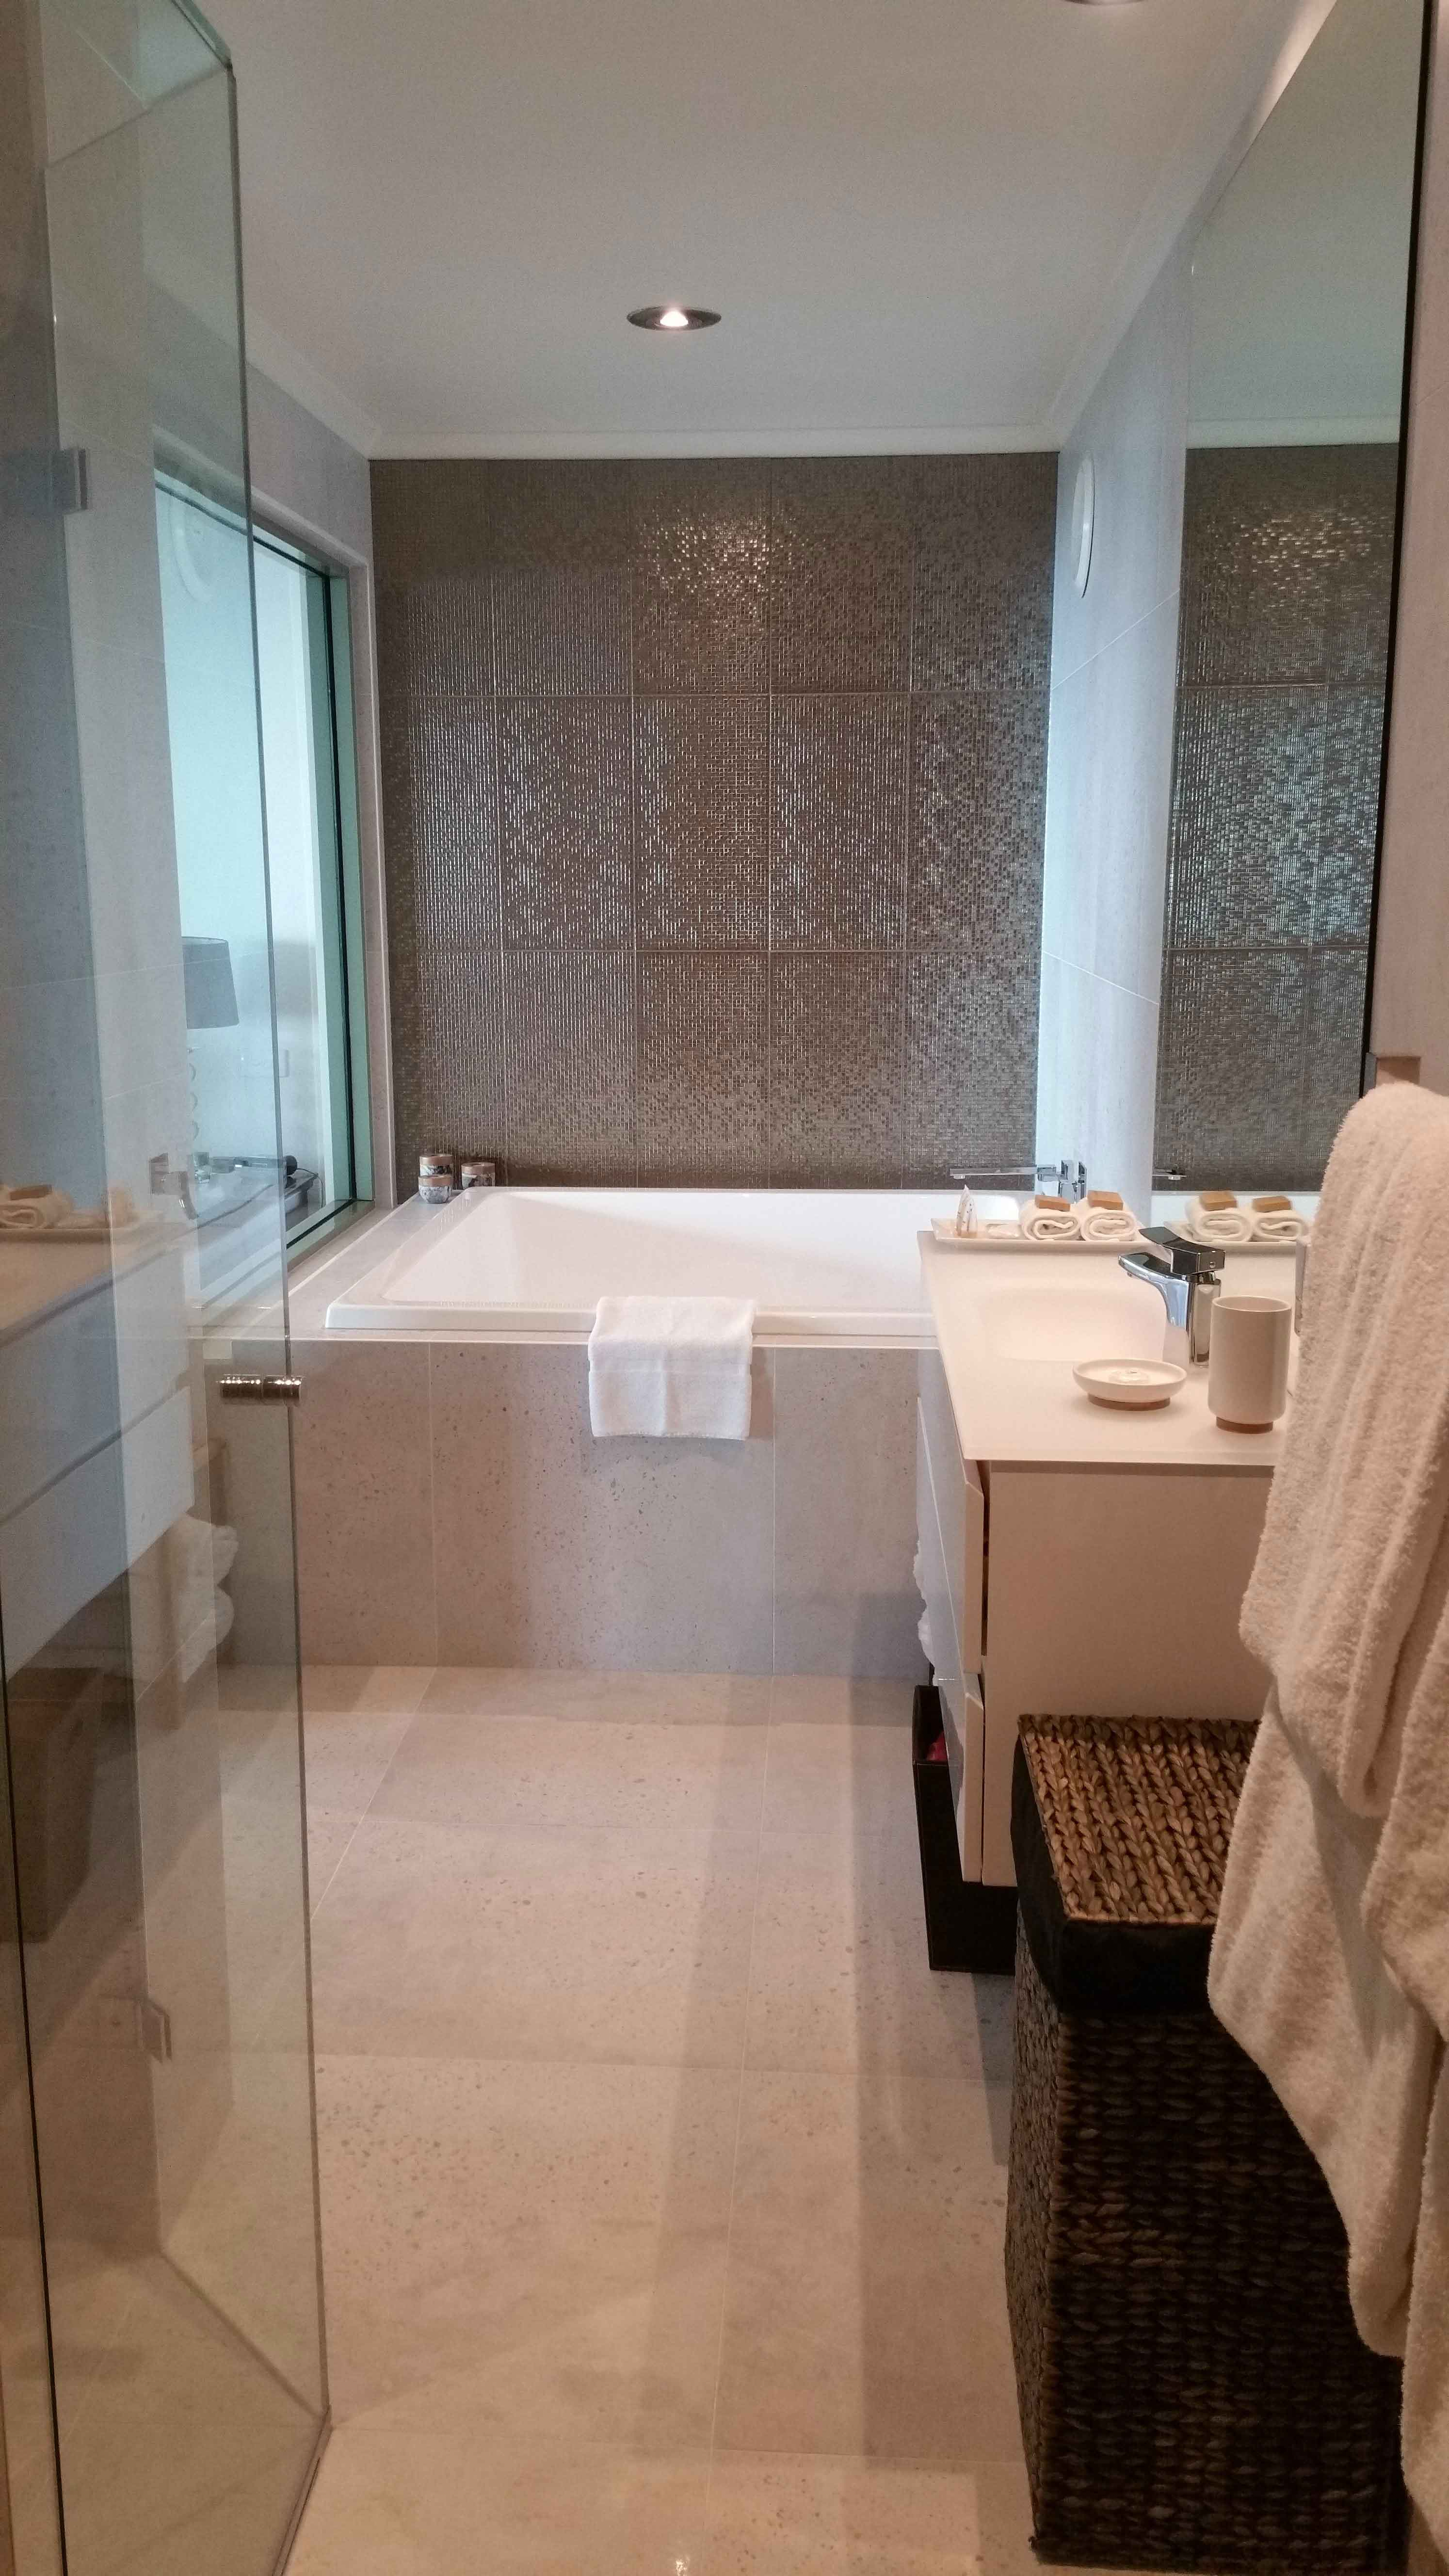 Bowen Suite Luxury Spa & Bathroom at Arthurs Views Couples Retreat Victoria